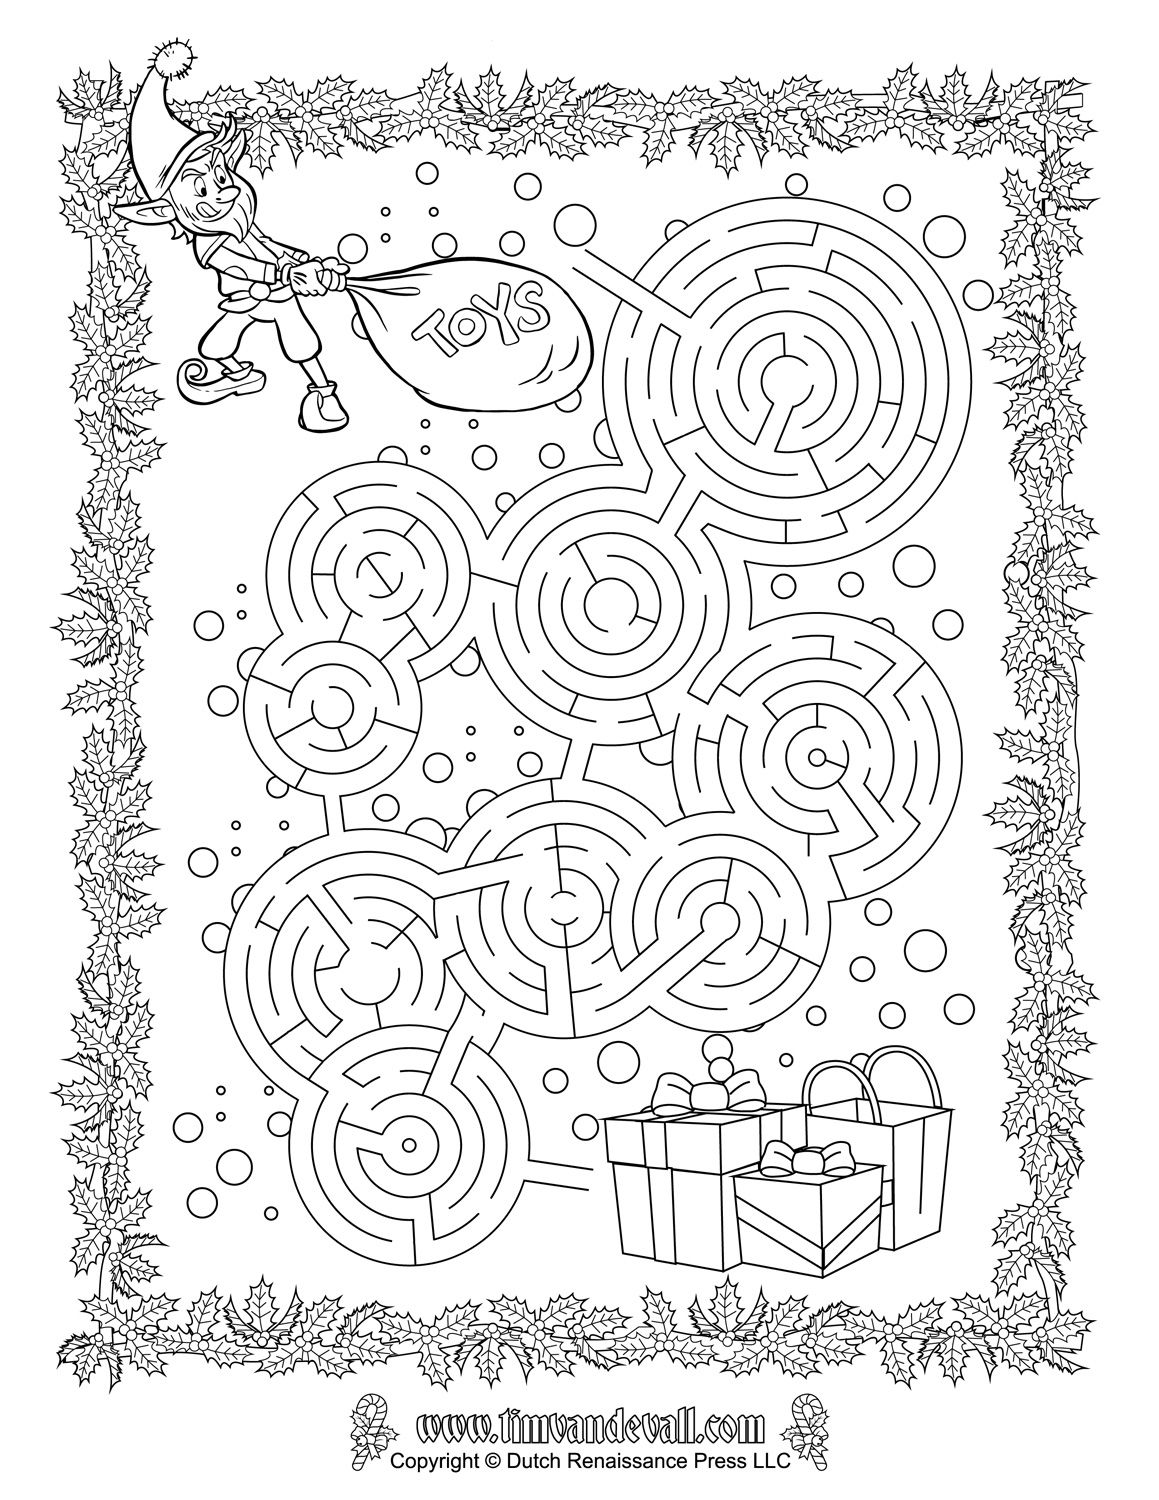 photo about Christmas Maze Printable referred to as Pin as a result of Davia Houston upon winter season clroom Xmas maze